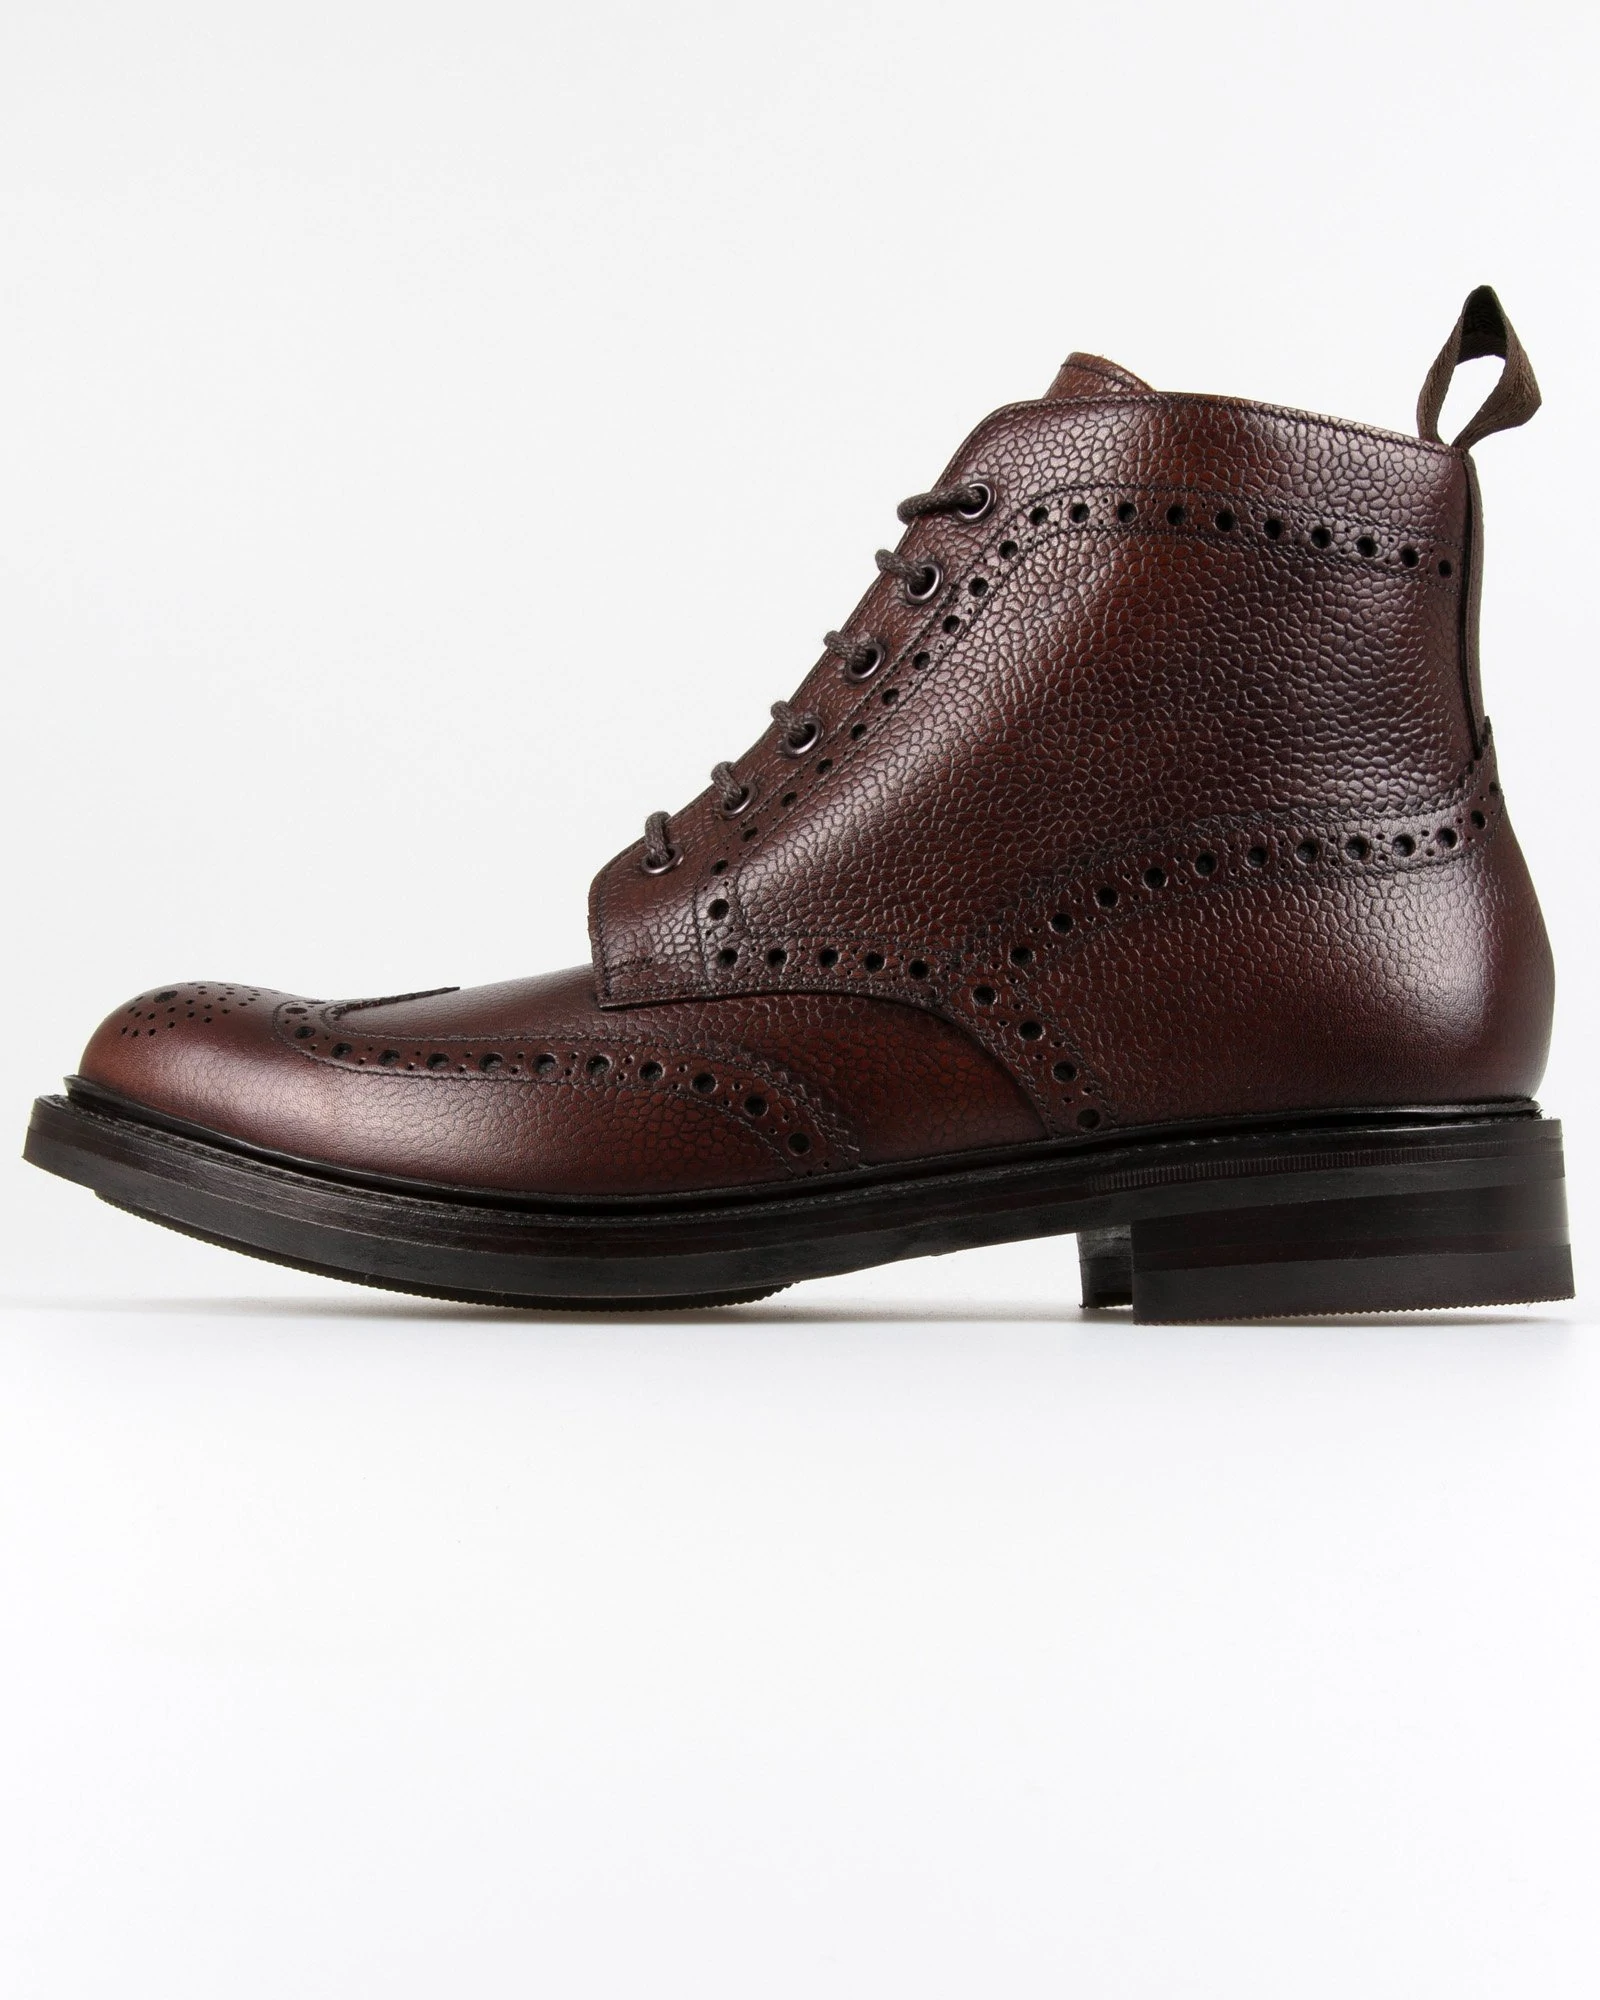 Loake Bedale Brogue Boot - Oxblood